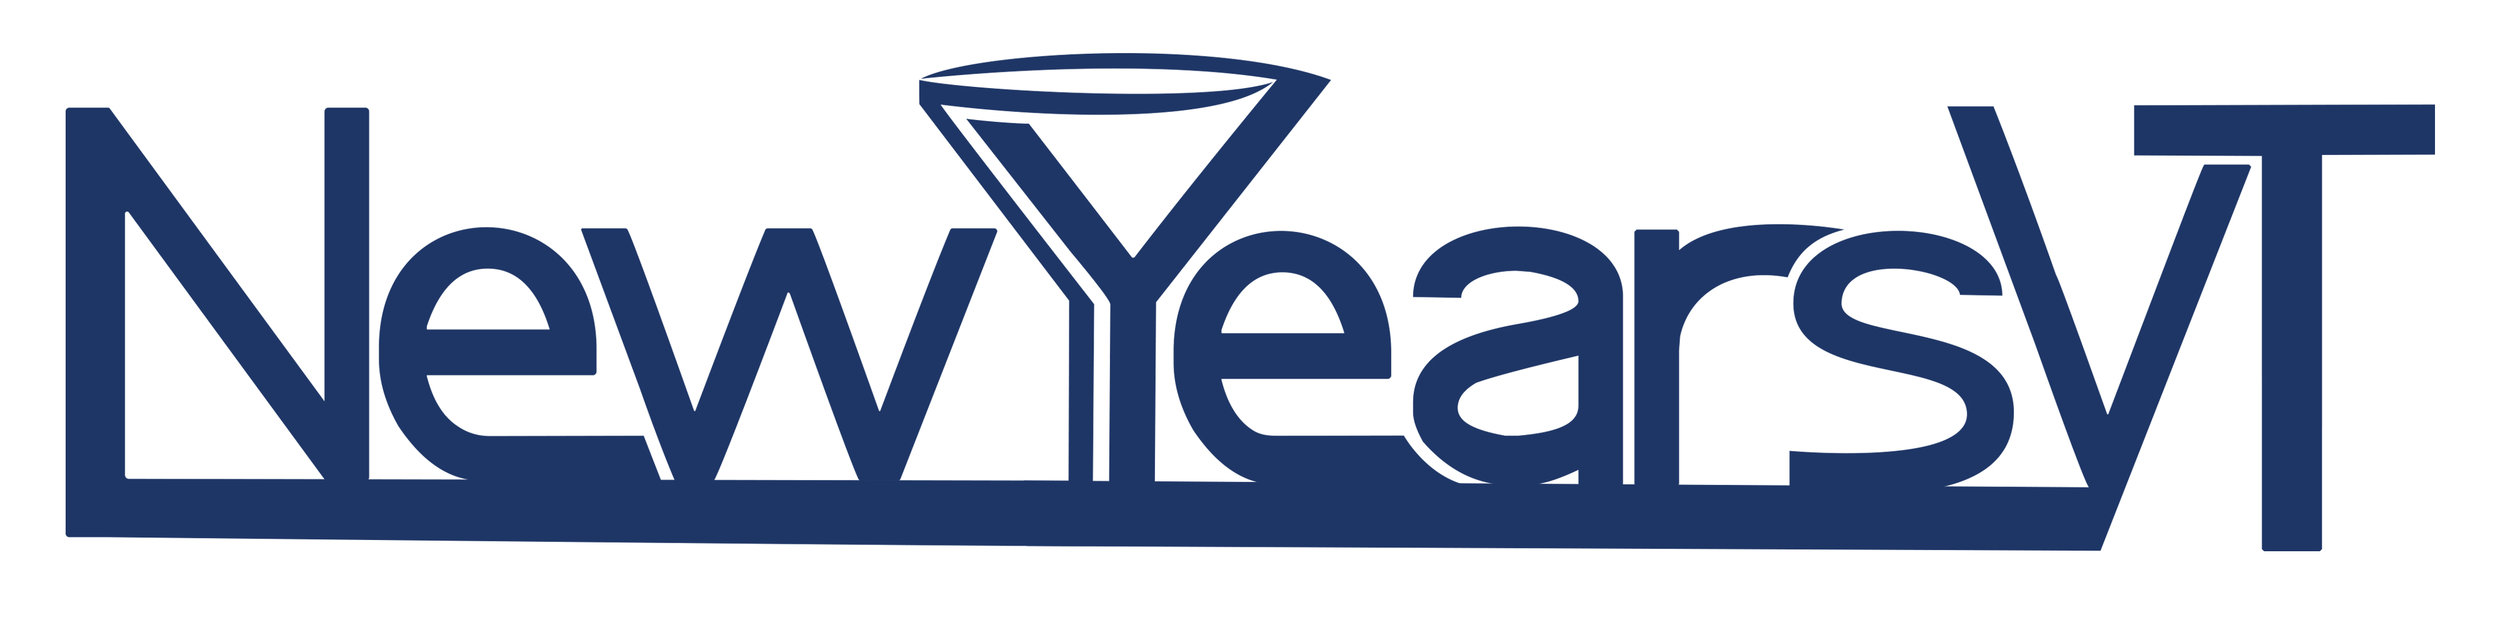 New Years VT logo cropped BLUE.jpg